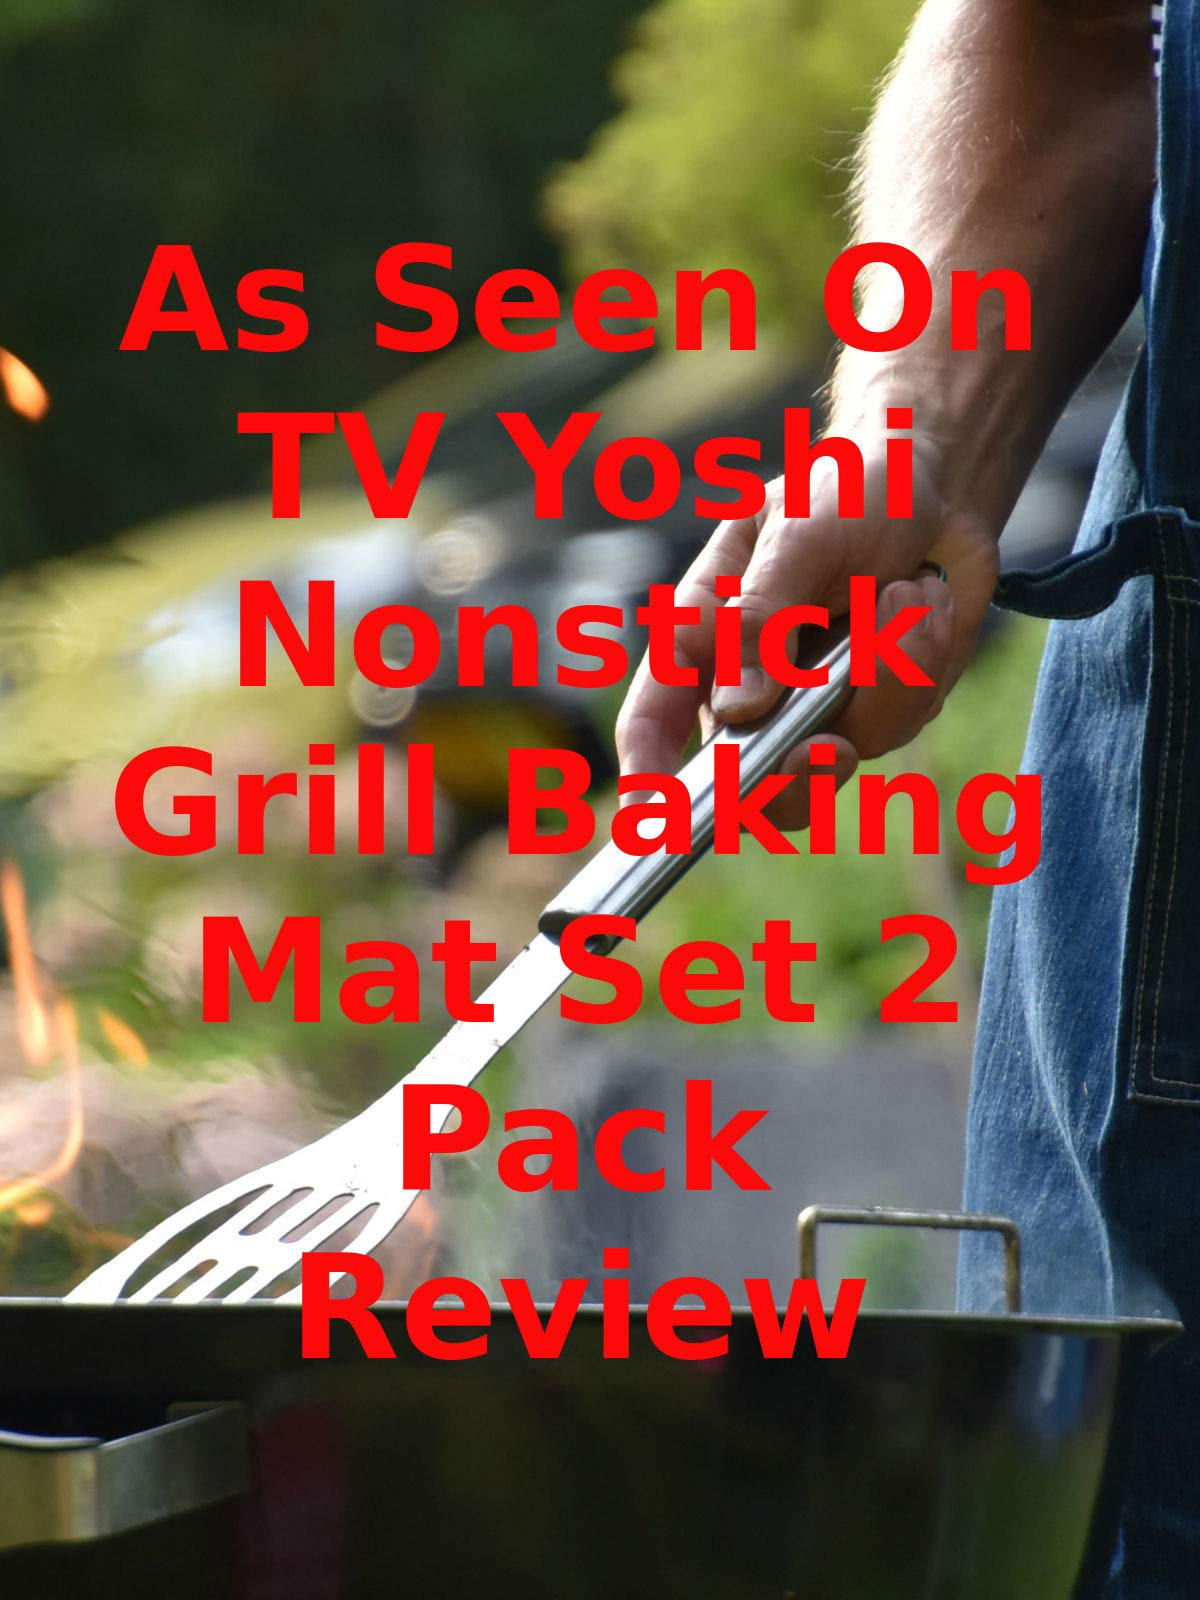 Review: As Seen On TV Yoshi Nonstick Grill Baking Mat Set 2 Pack Review on Amazon Prime Video UK